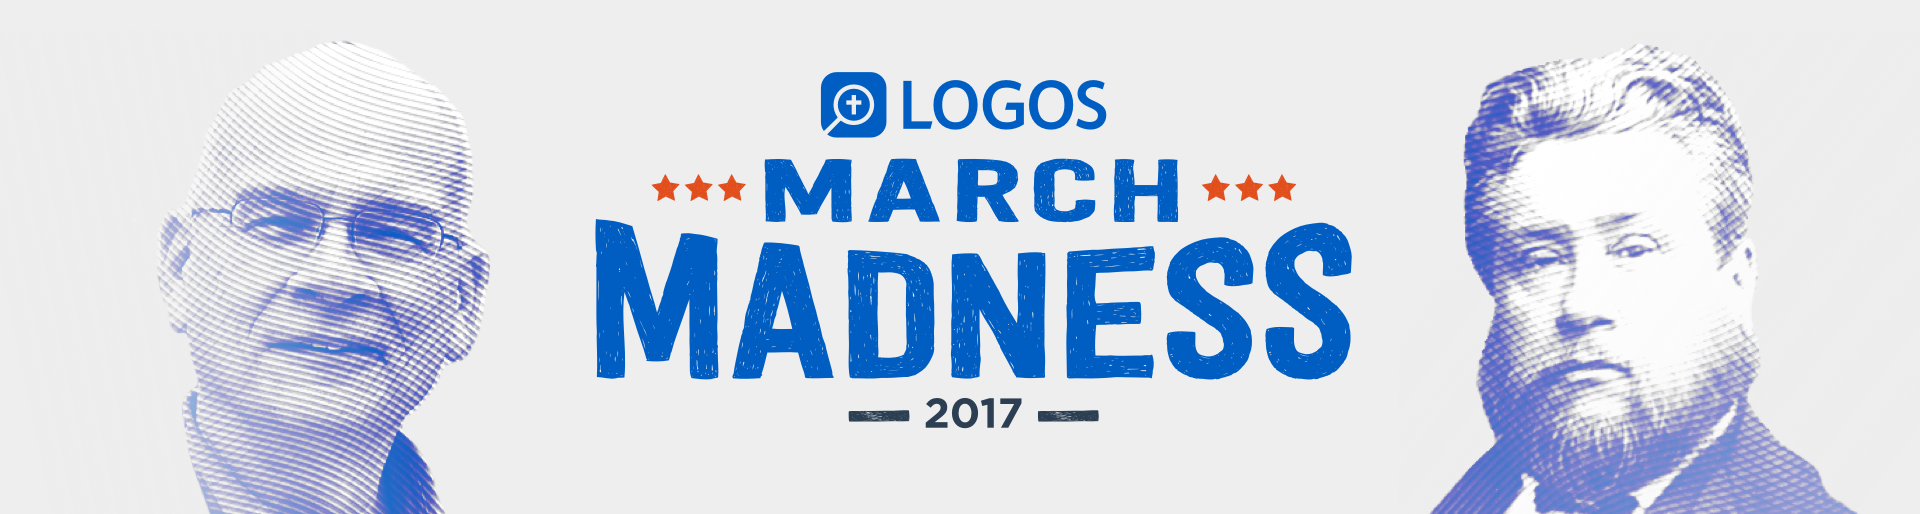 Logos March Madness 2017